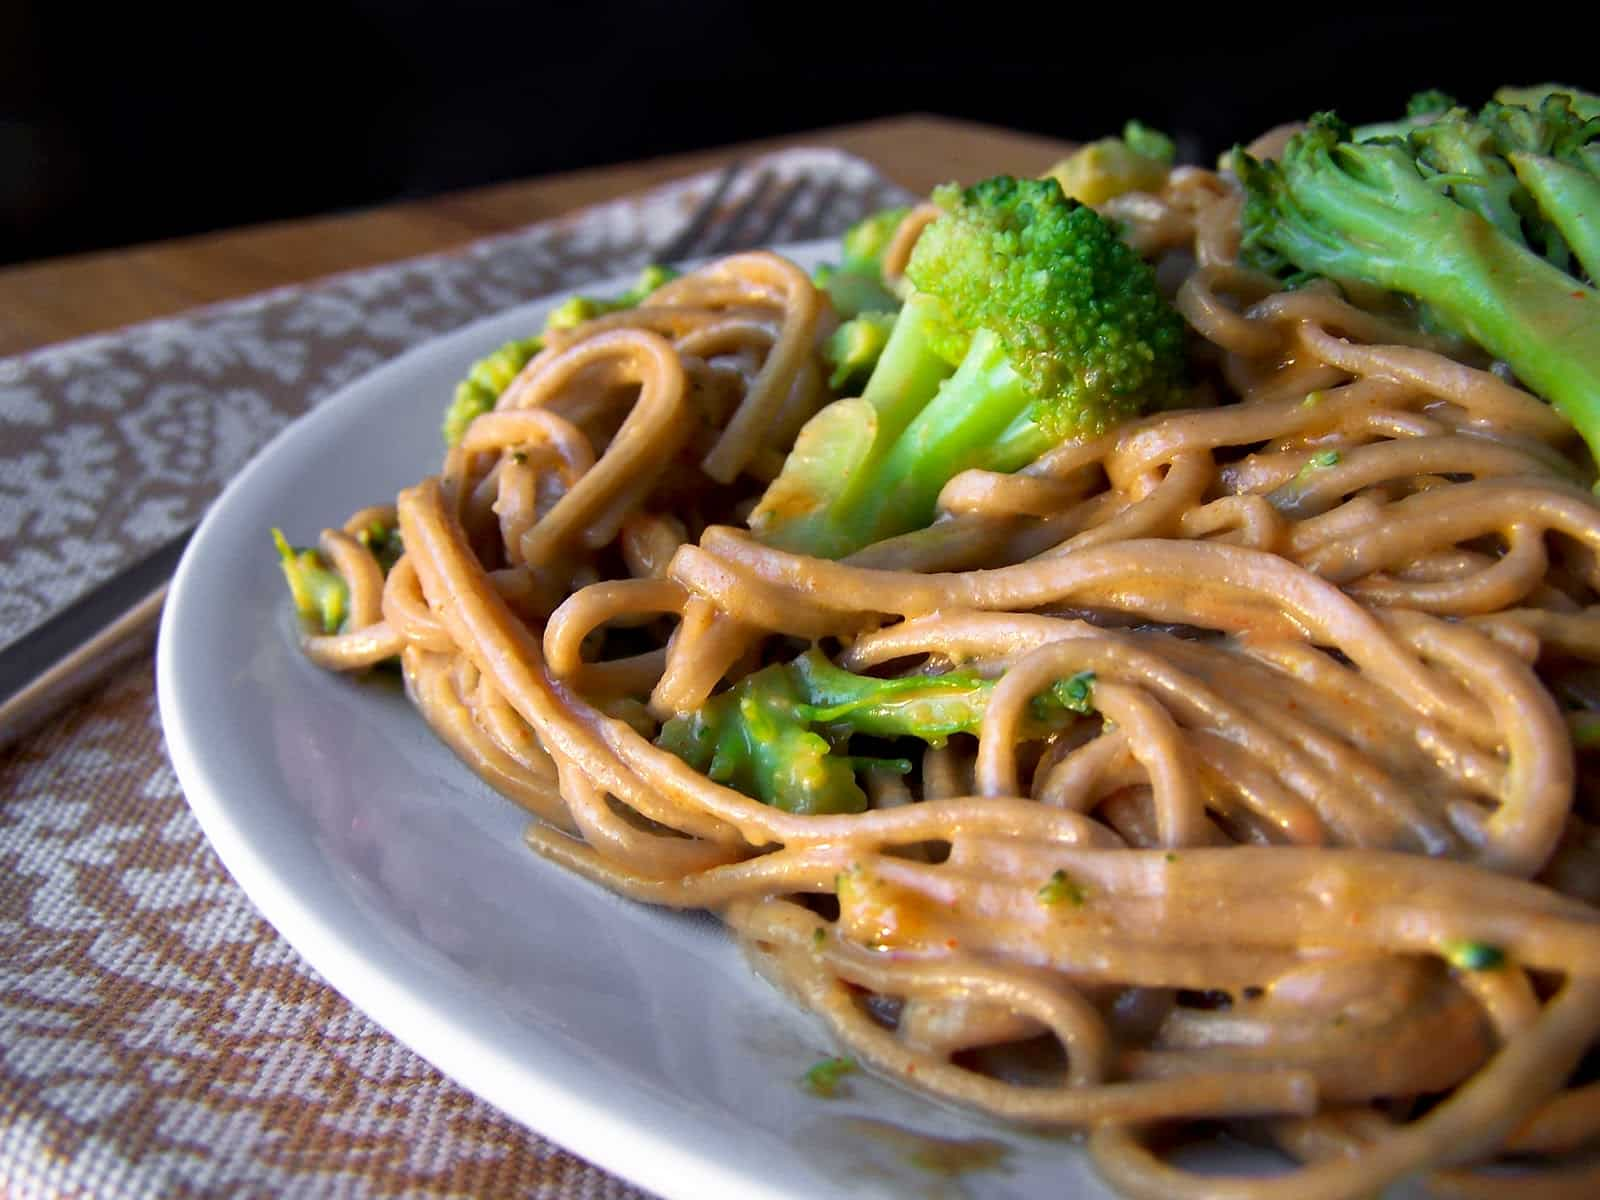 Chinese Noodles with Broccoli in Peanut Sauce Recipe - 6 Points ...